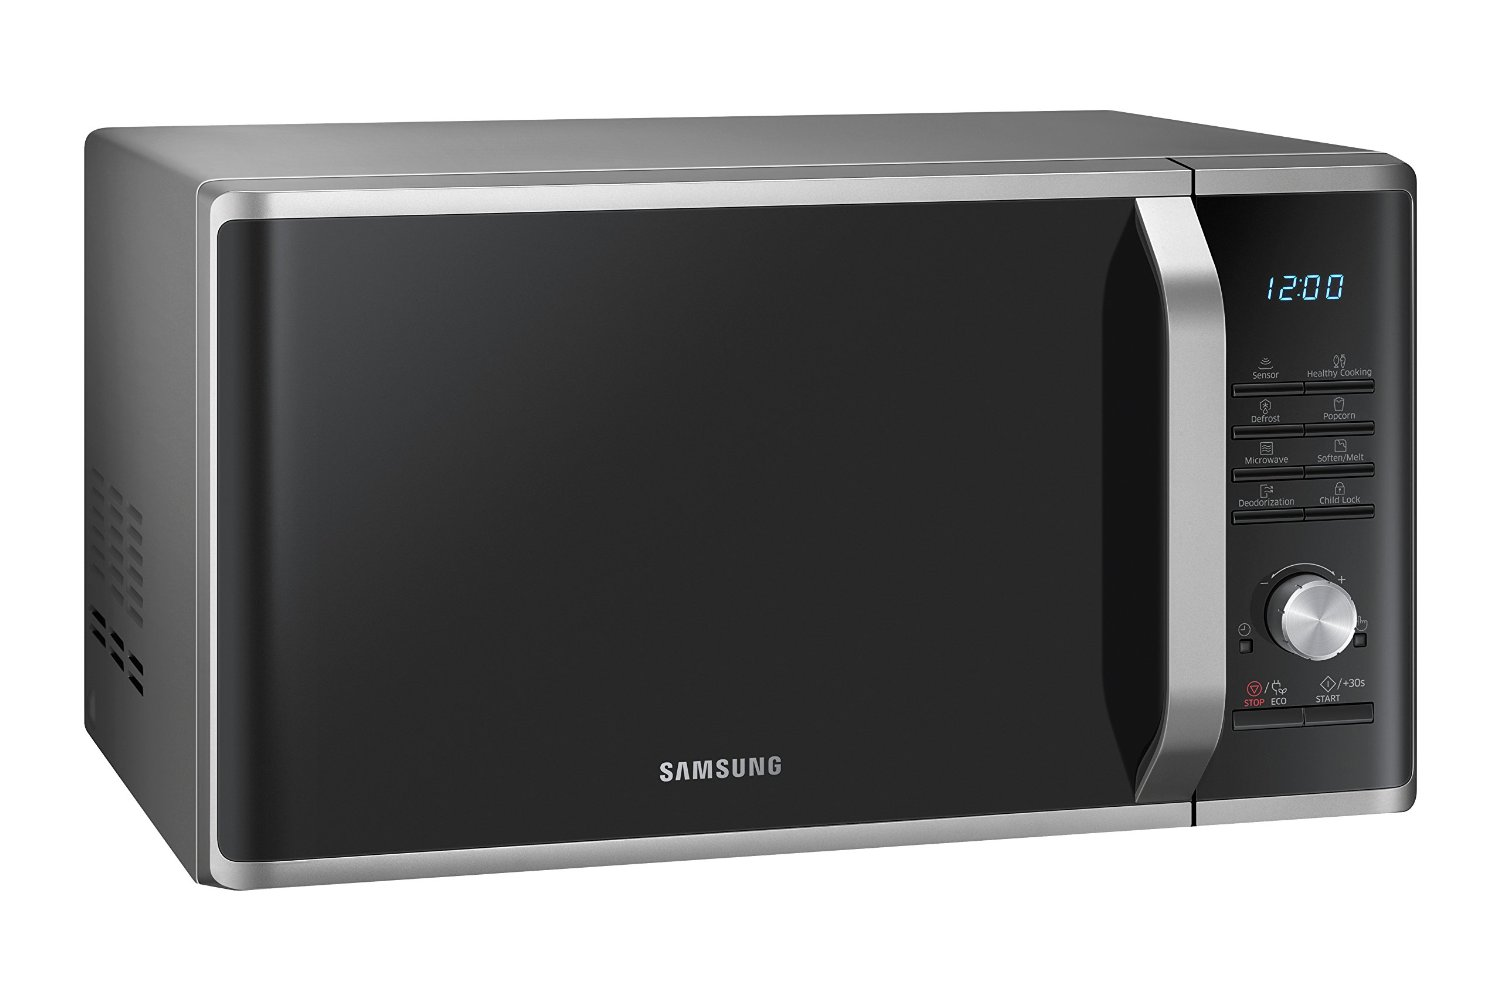 Samsung MS11K3000AS Microwave